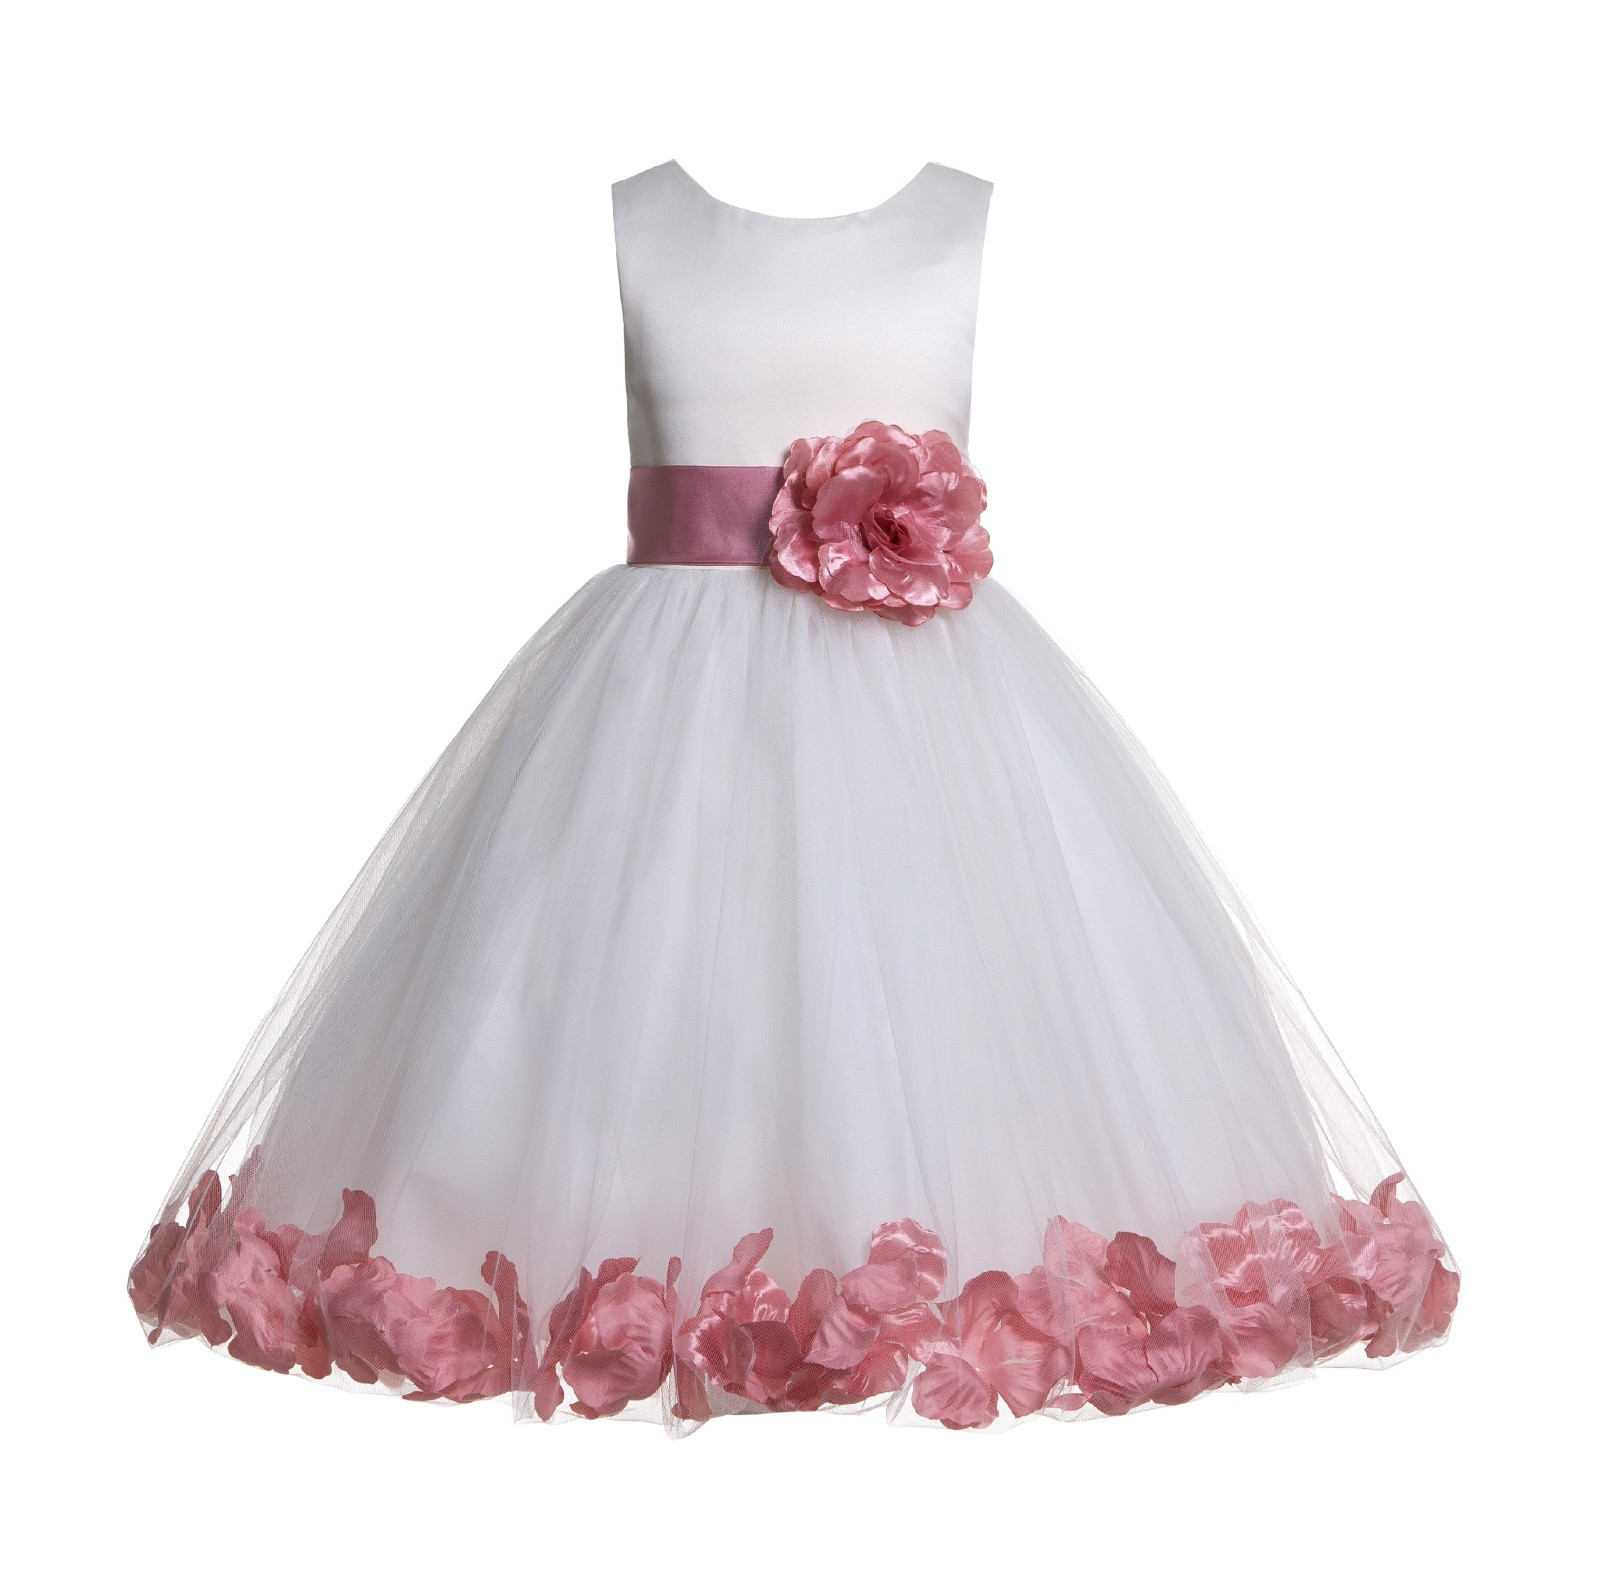 Ivorydusty Rose Tulle Rose Petals Flower Girl Dress Pageant 302s